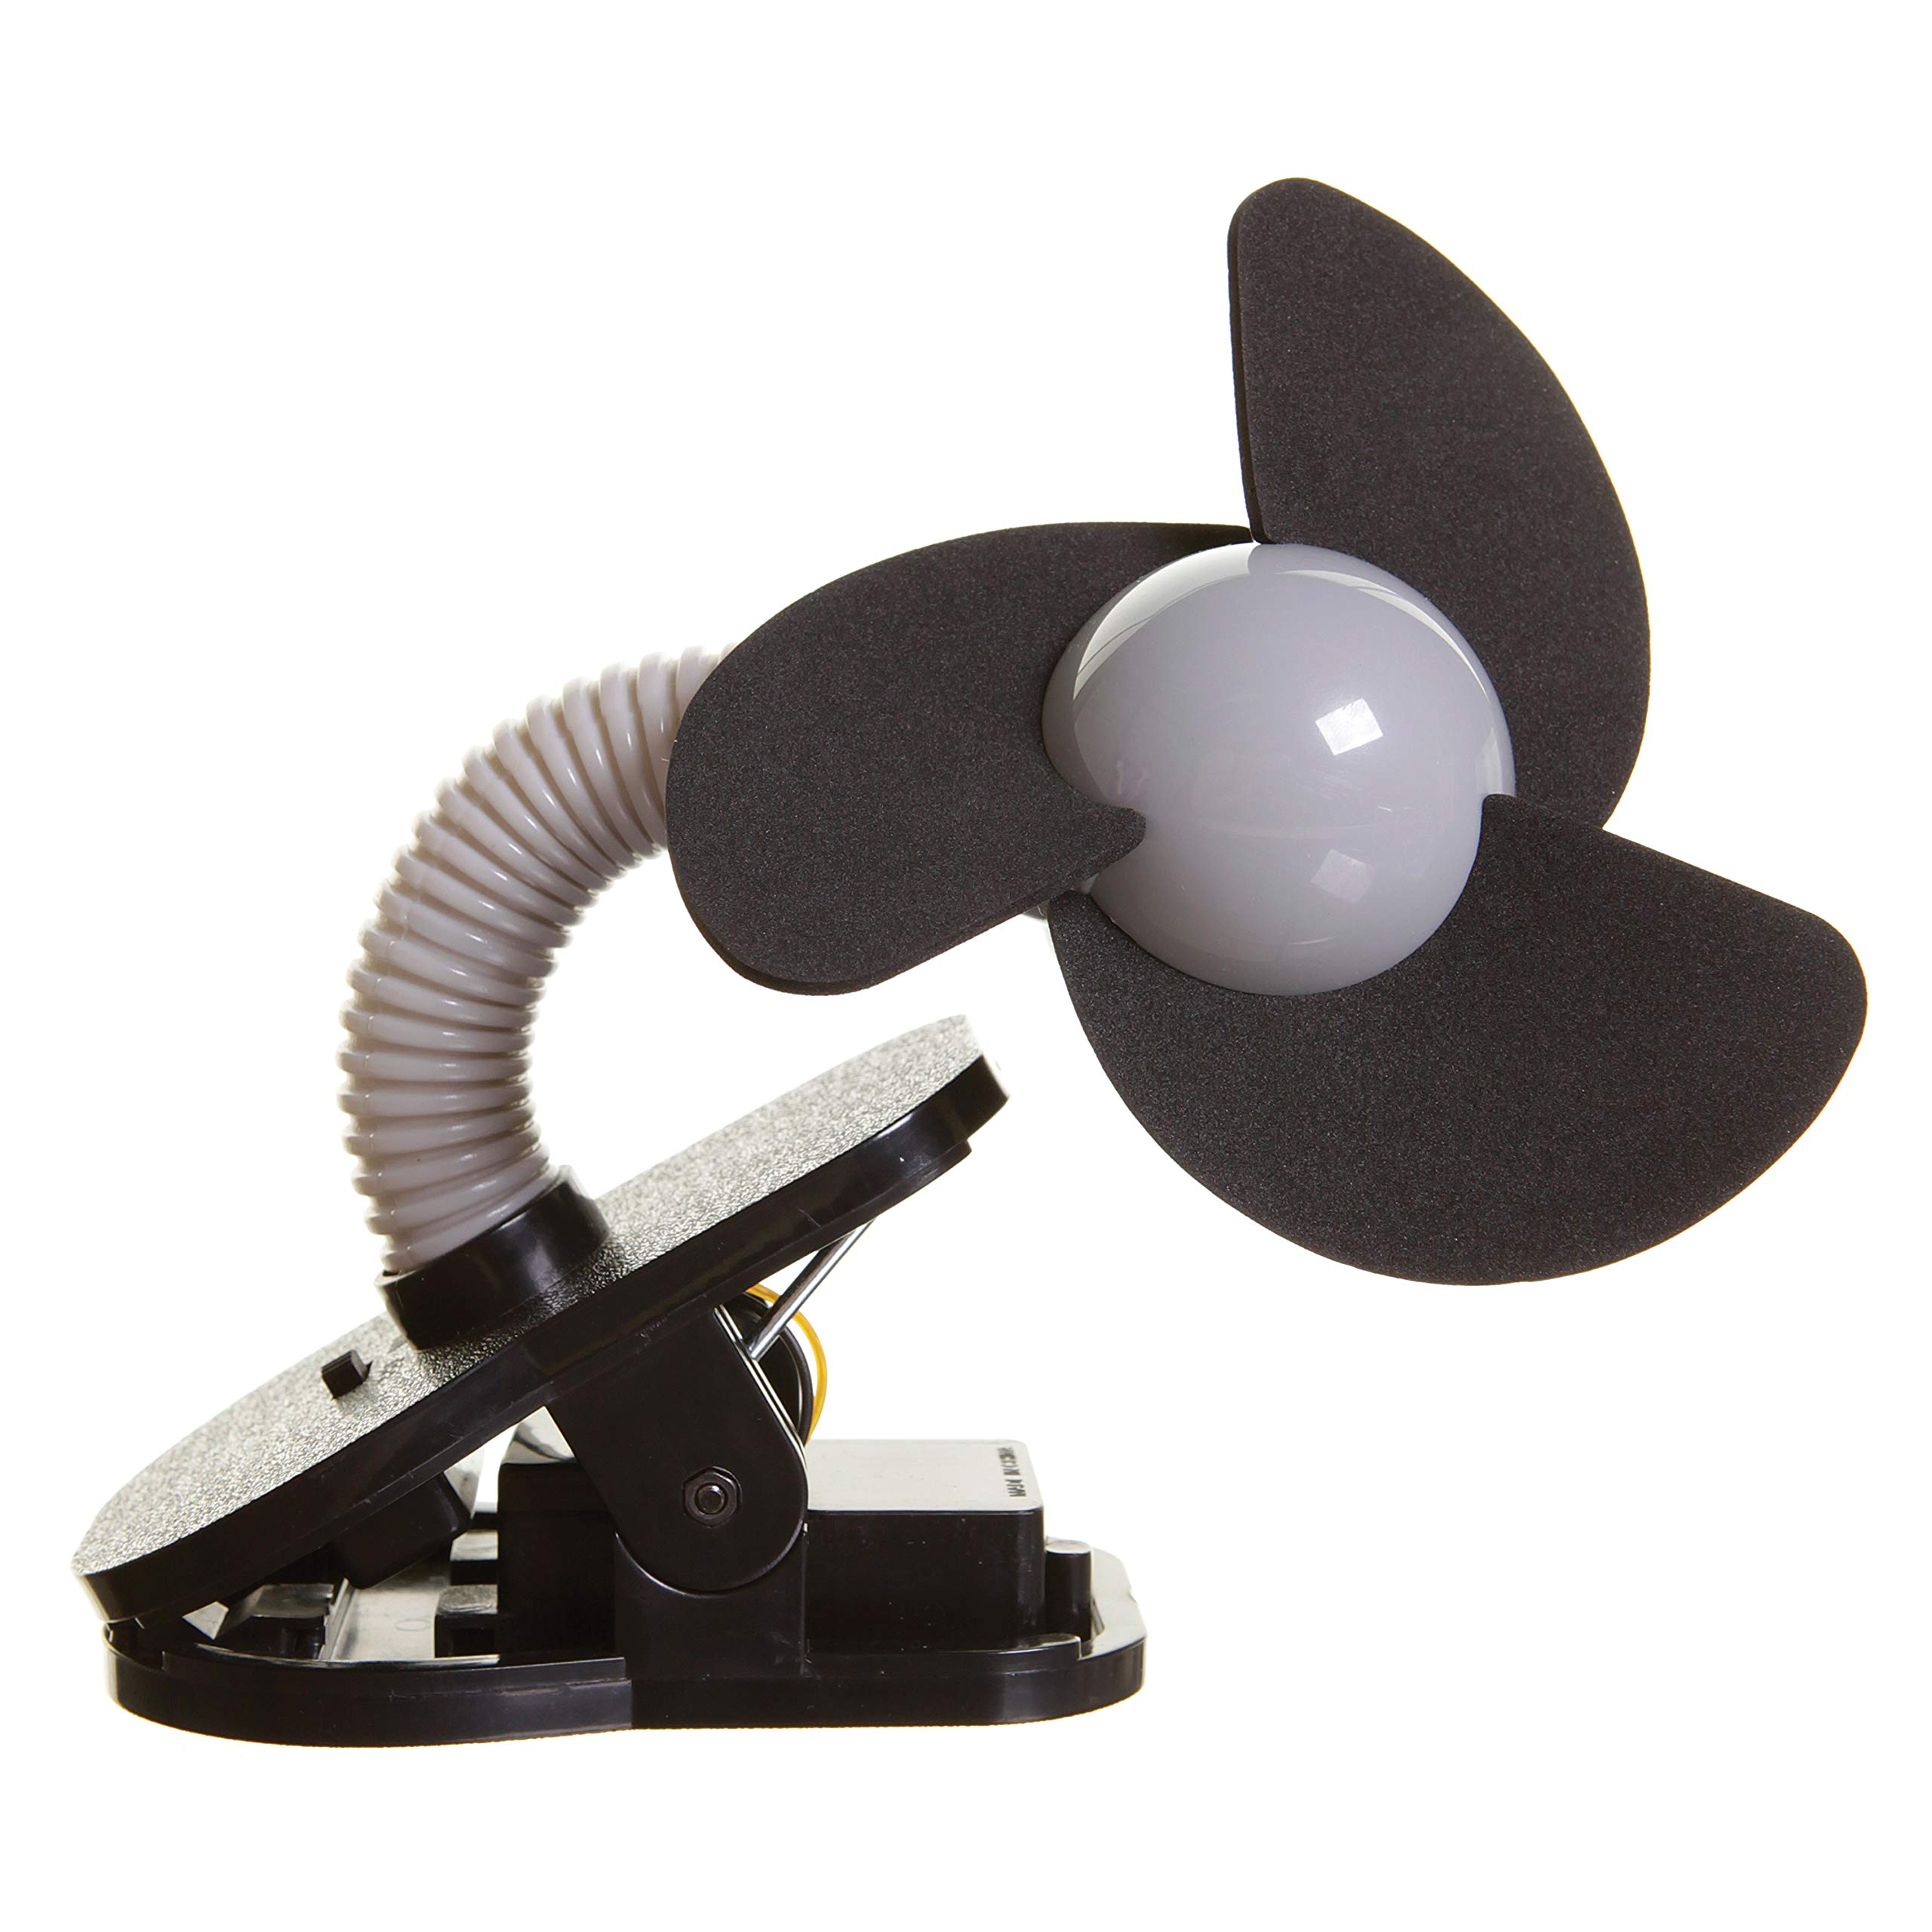 Little Chicks Clip on Fan with Soft Foam Blades by Little Chicks